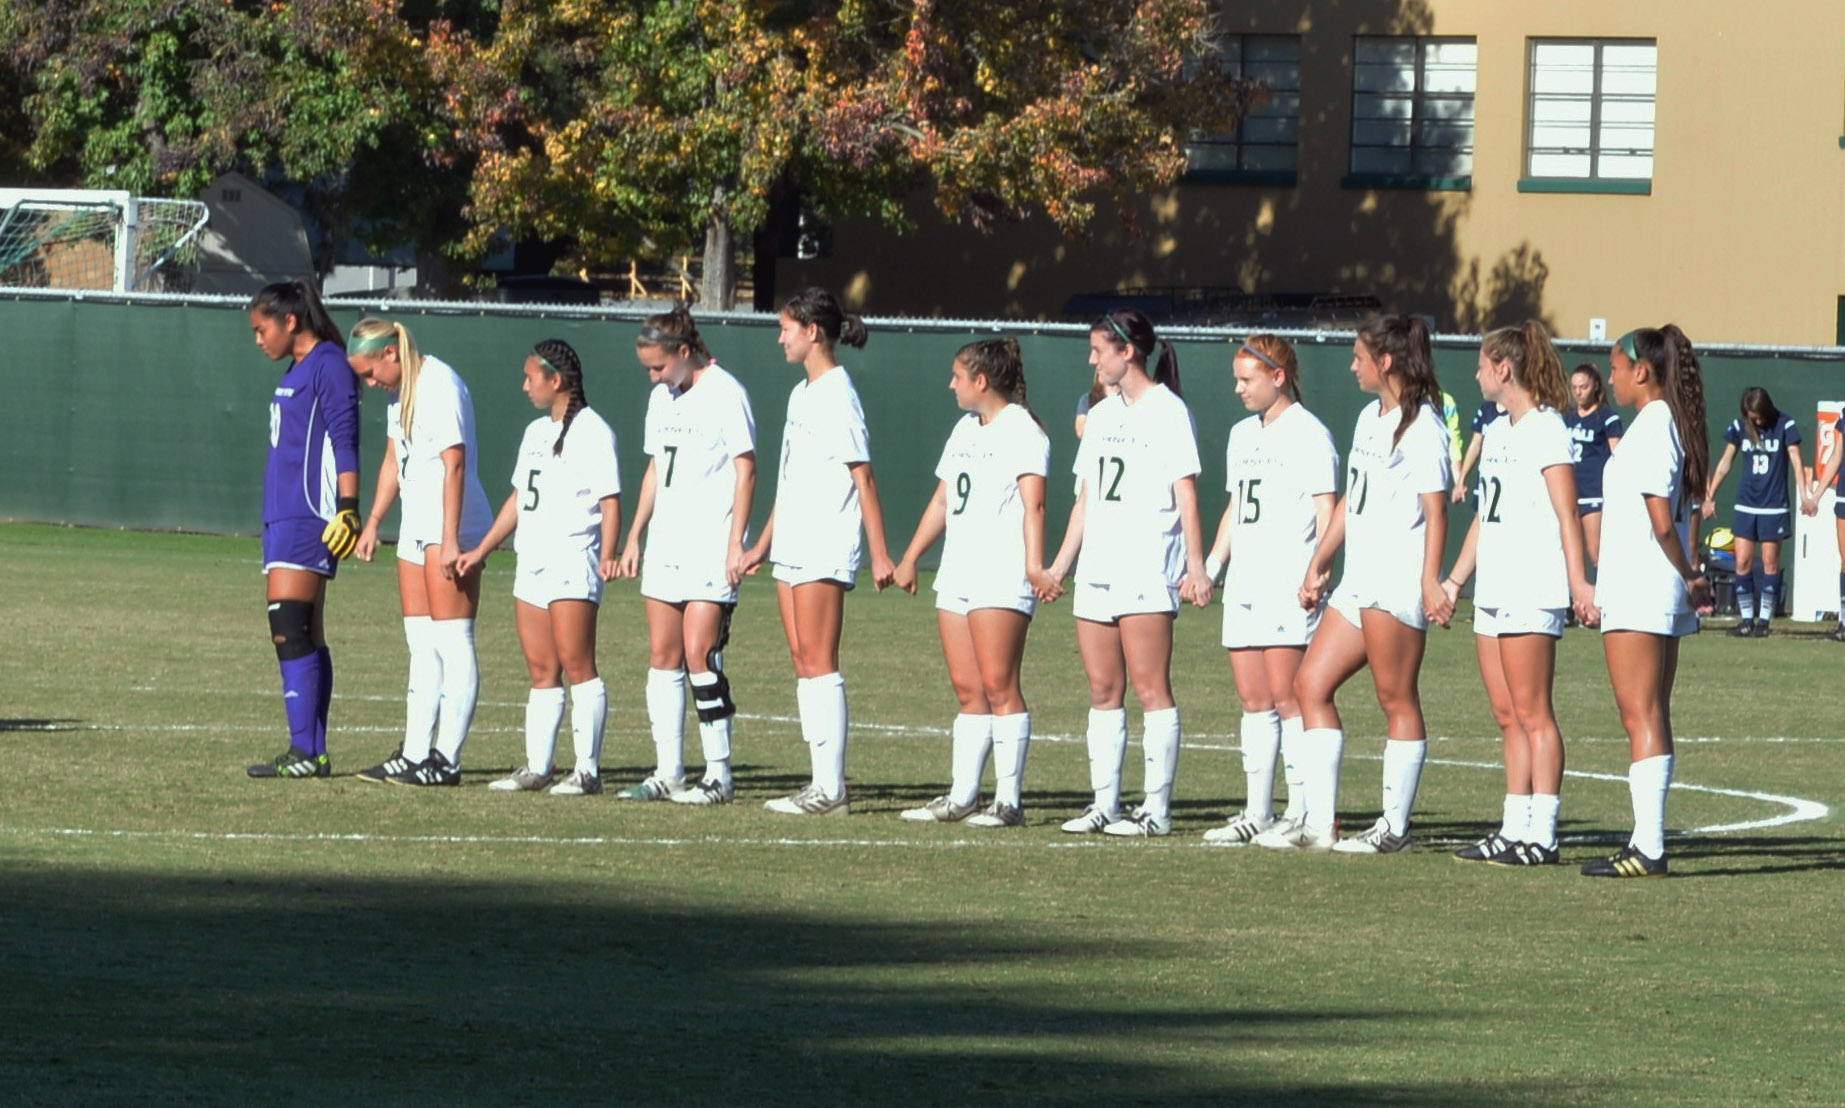 WOMEN'S SOCCER OPENS BIG SKY TOURNEY WEDNESDAY AGAINST NORTHERN COLORADO